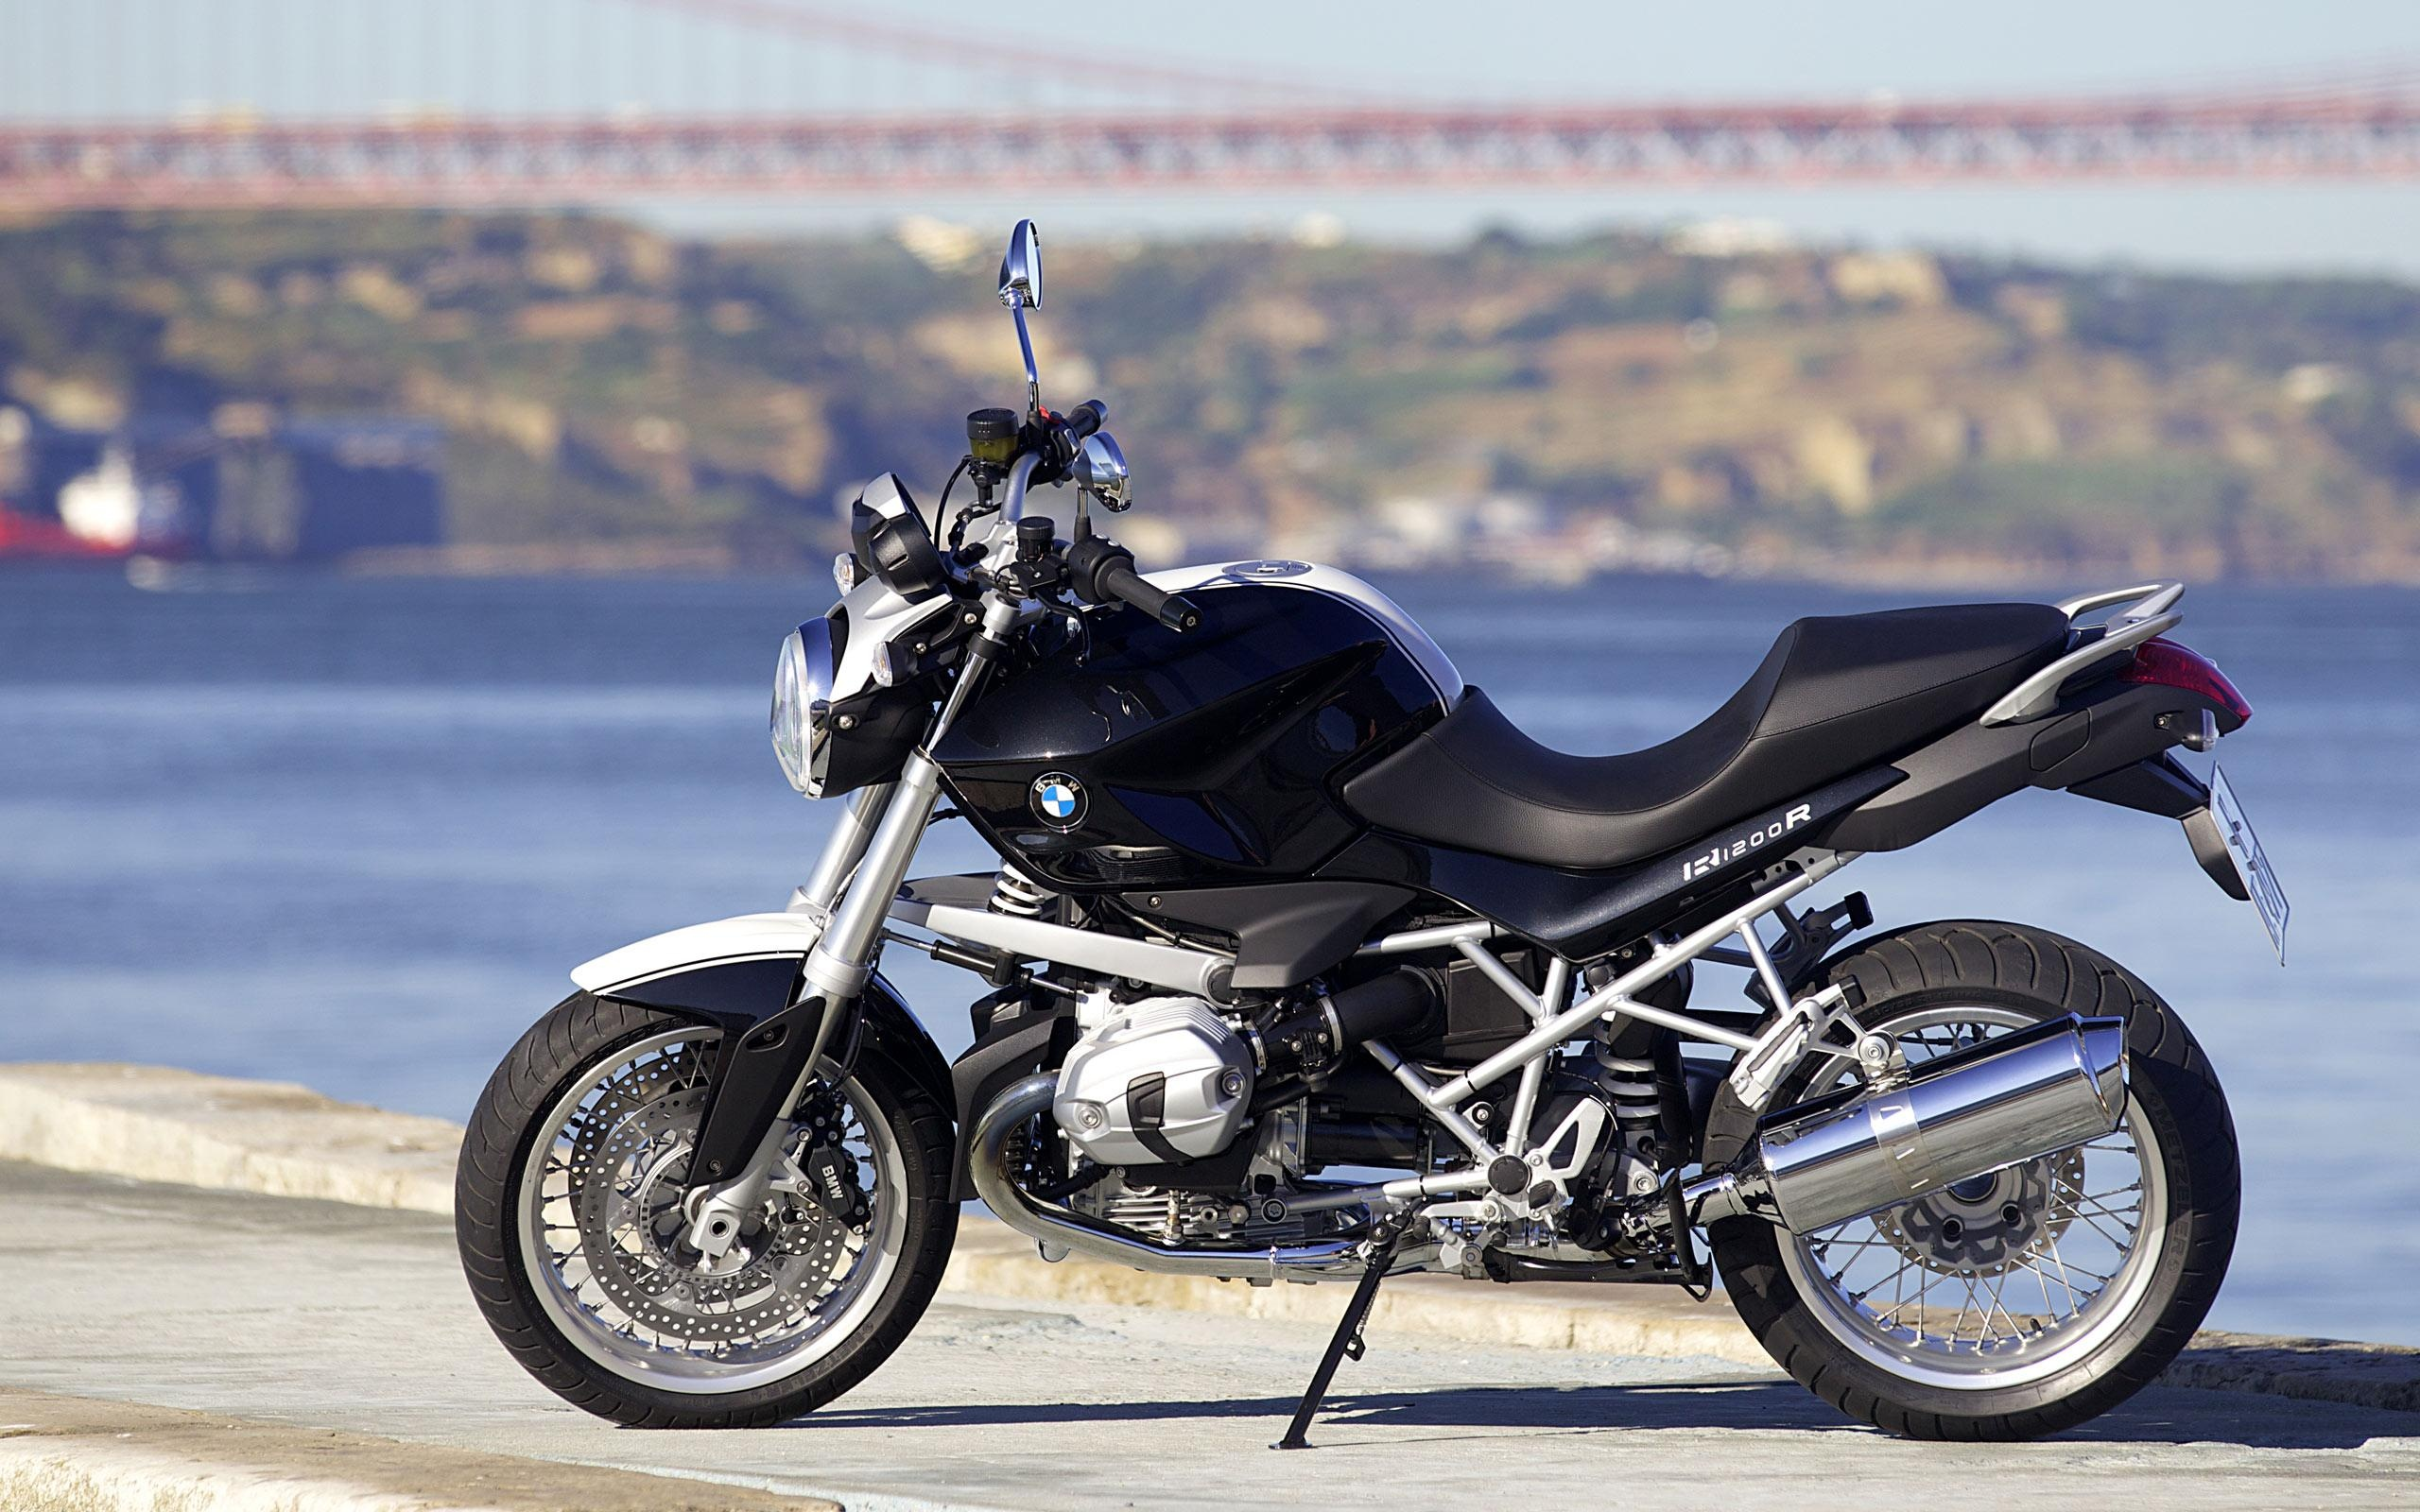 BMW R1200R Motorcycle